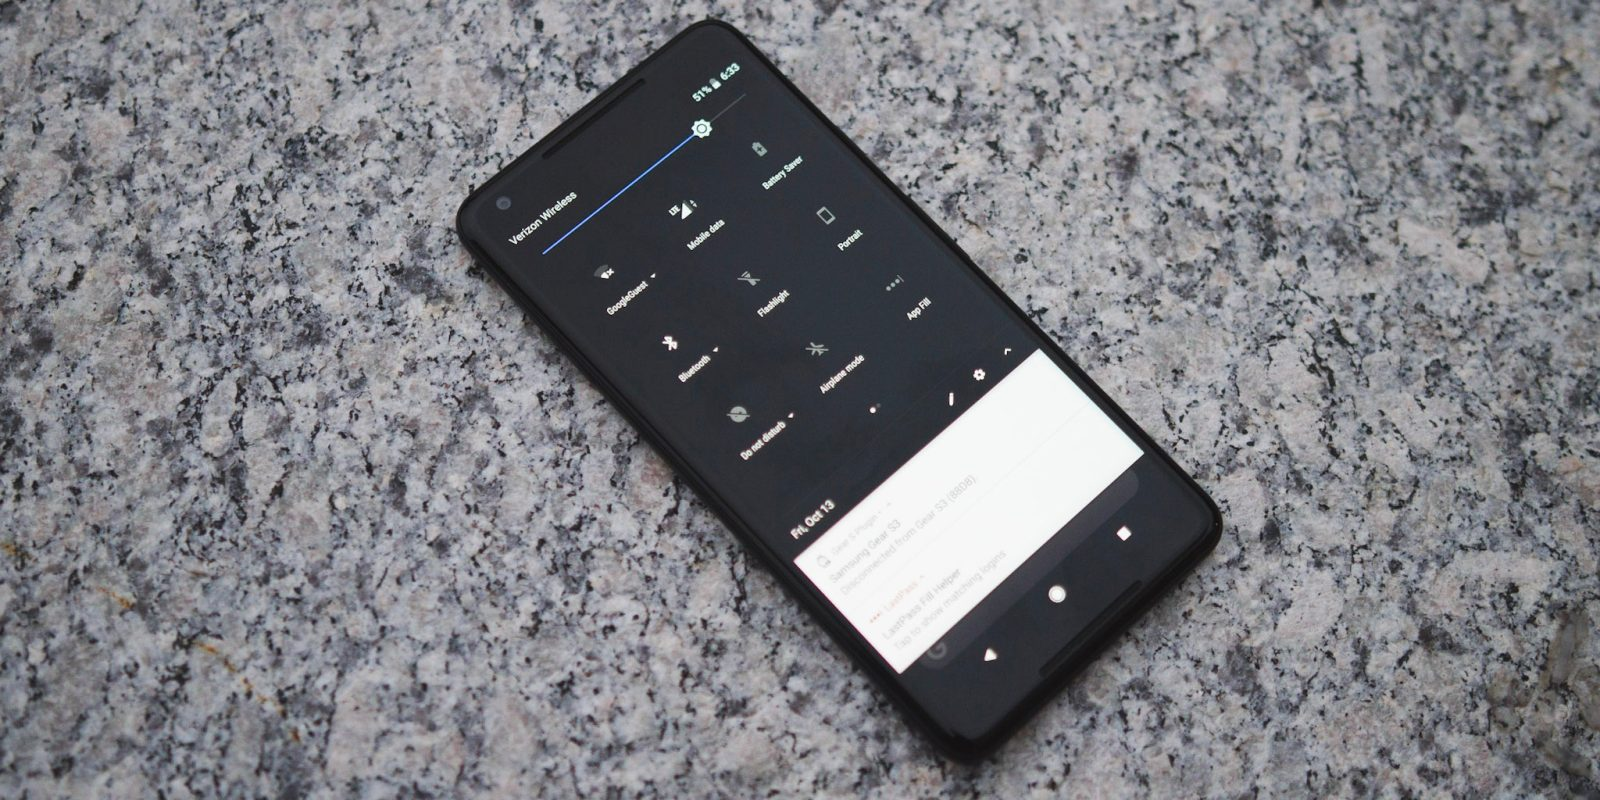 The Google Pixel 2 Has A Dark Theme When You Change Your Wallpaper